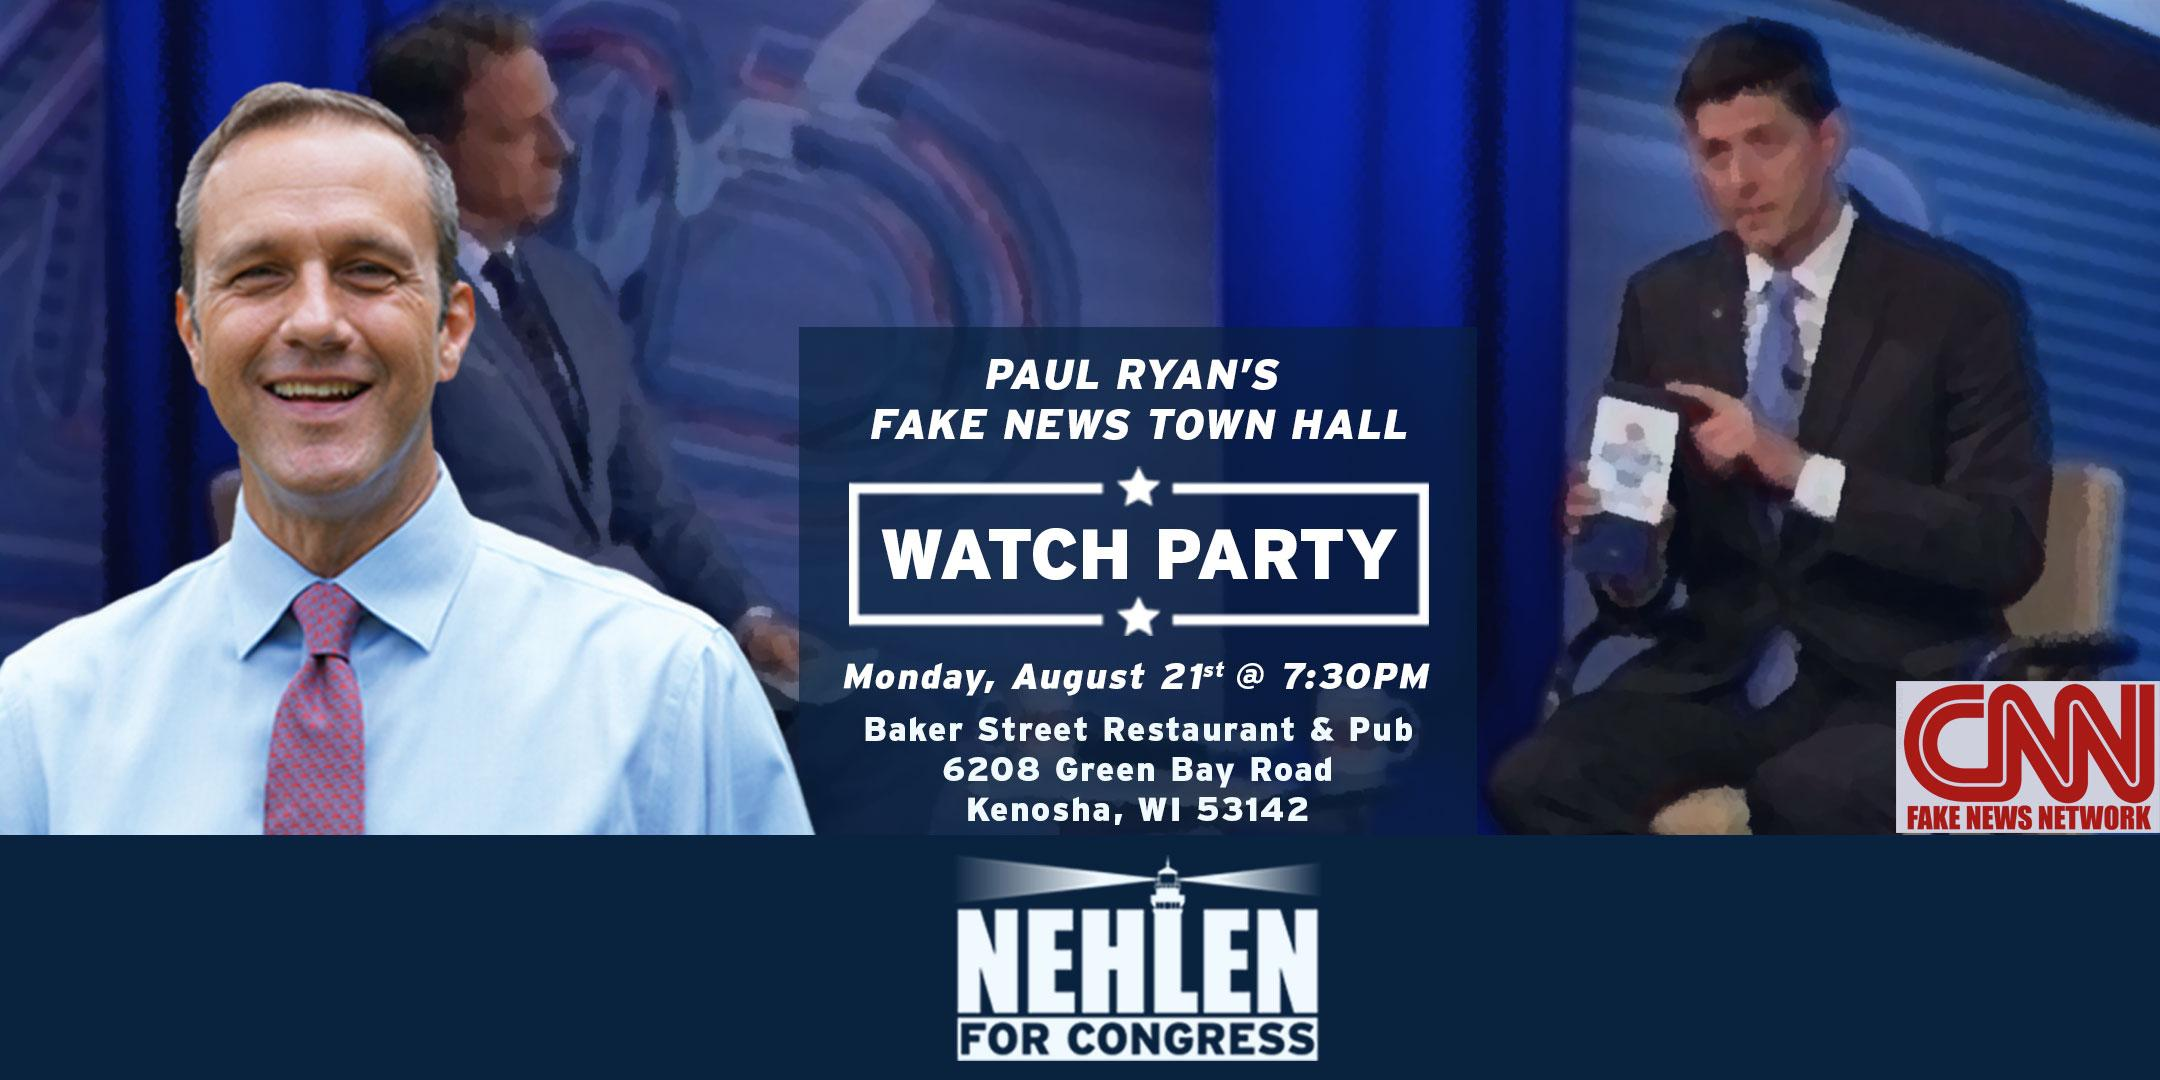 Paul Ryan Fake News Town Hall Watch Party